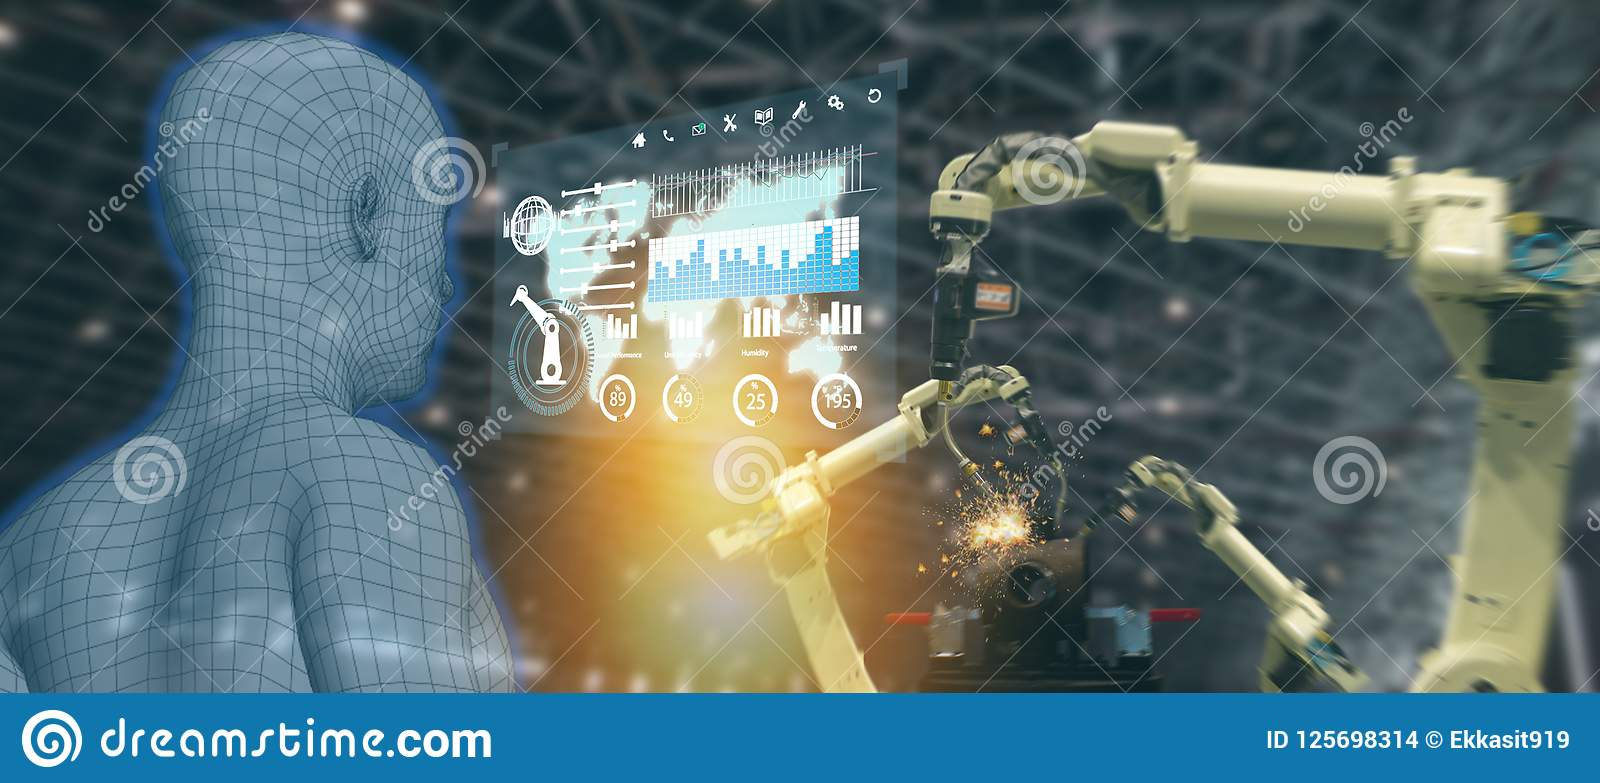 Iot industry 4.0 concept,industrial engineer using artificial intelligence ai augmented, virtual reality to monitoring machine i